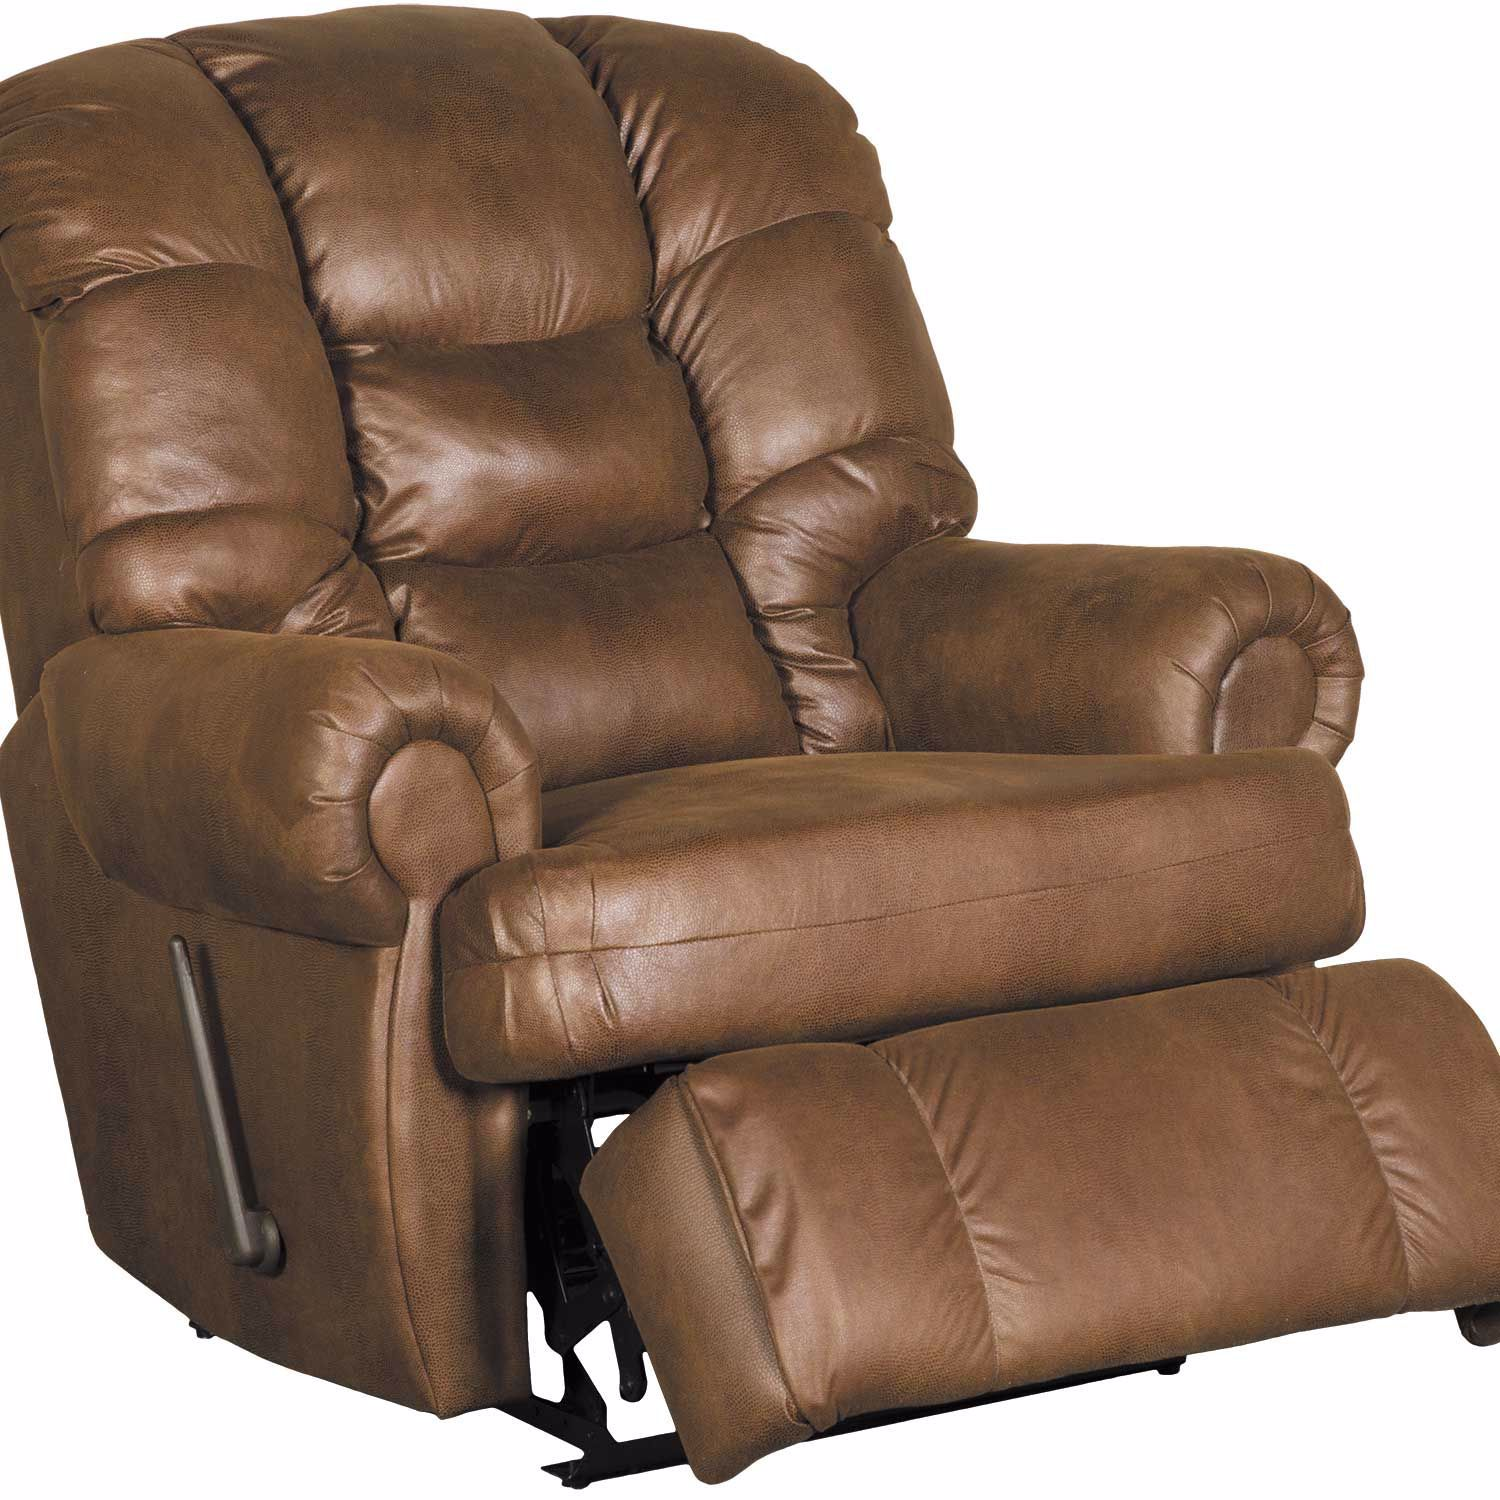 Picture of Stallion Wall Saver Chocolate Recliner